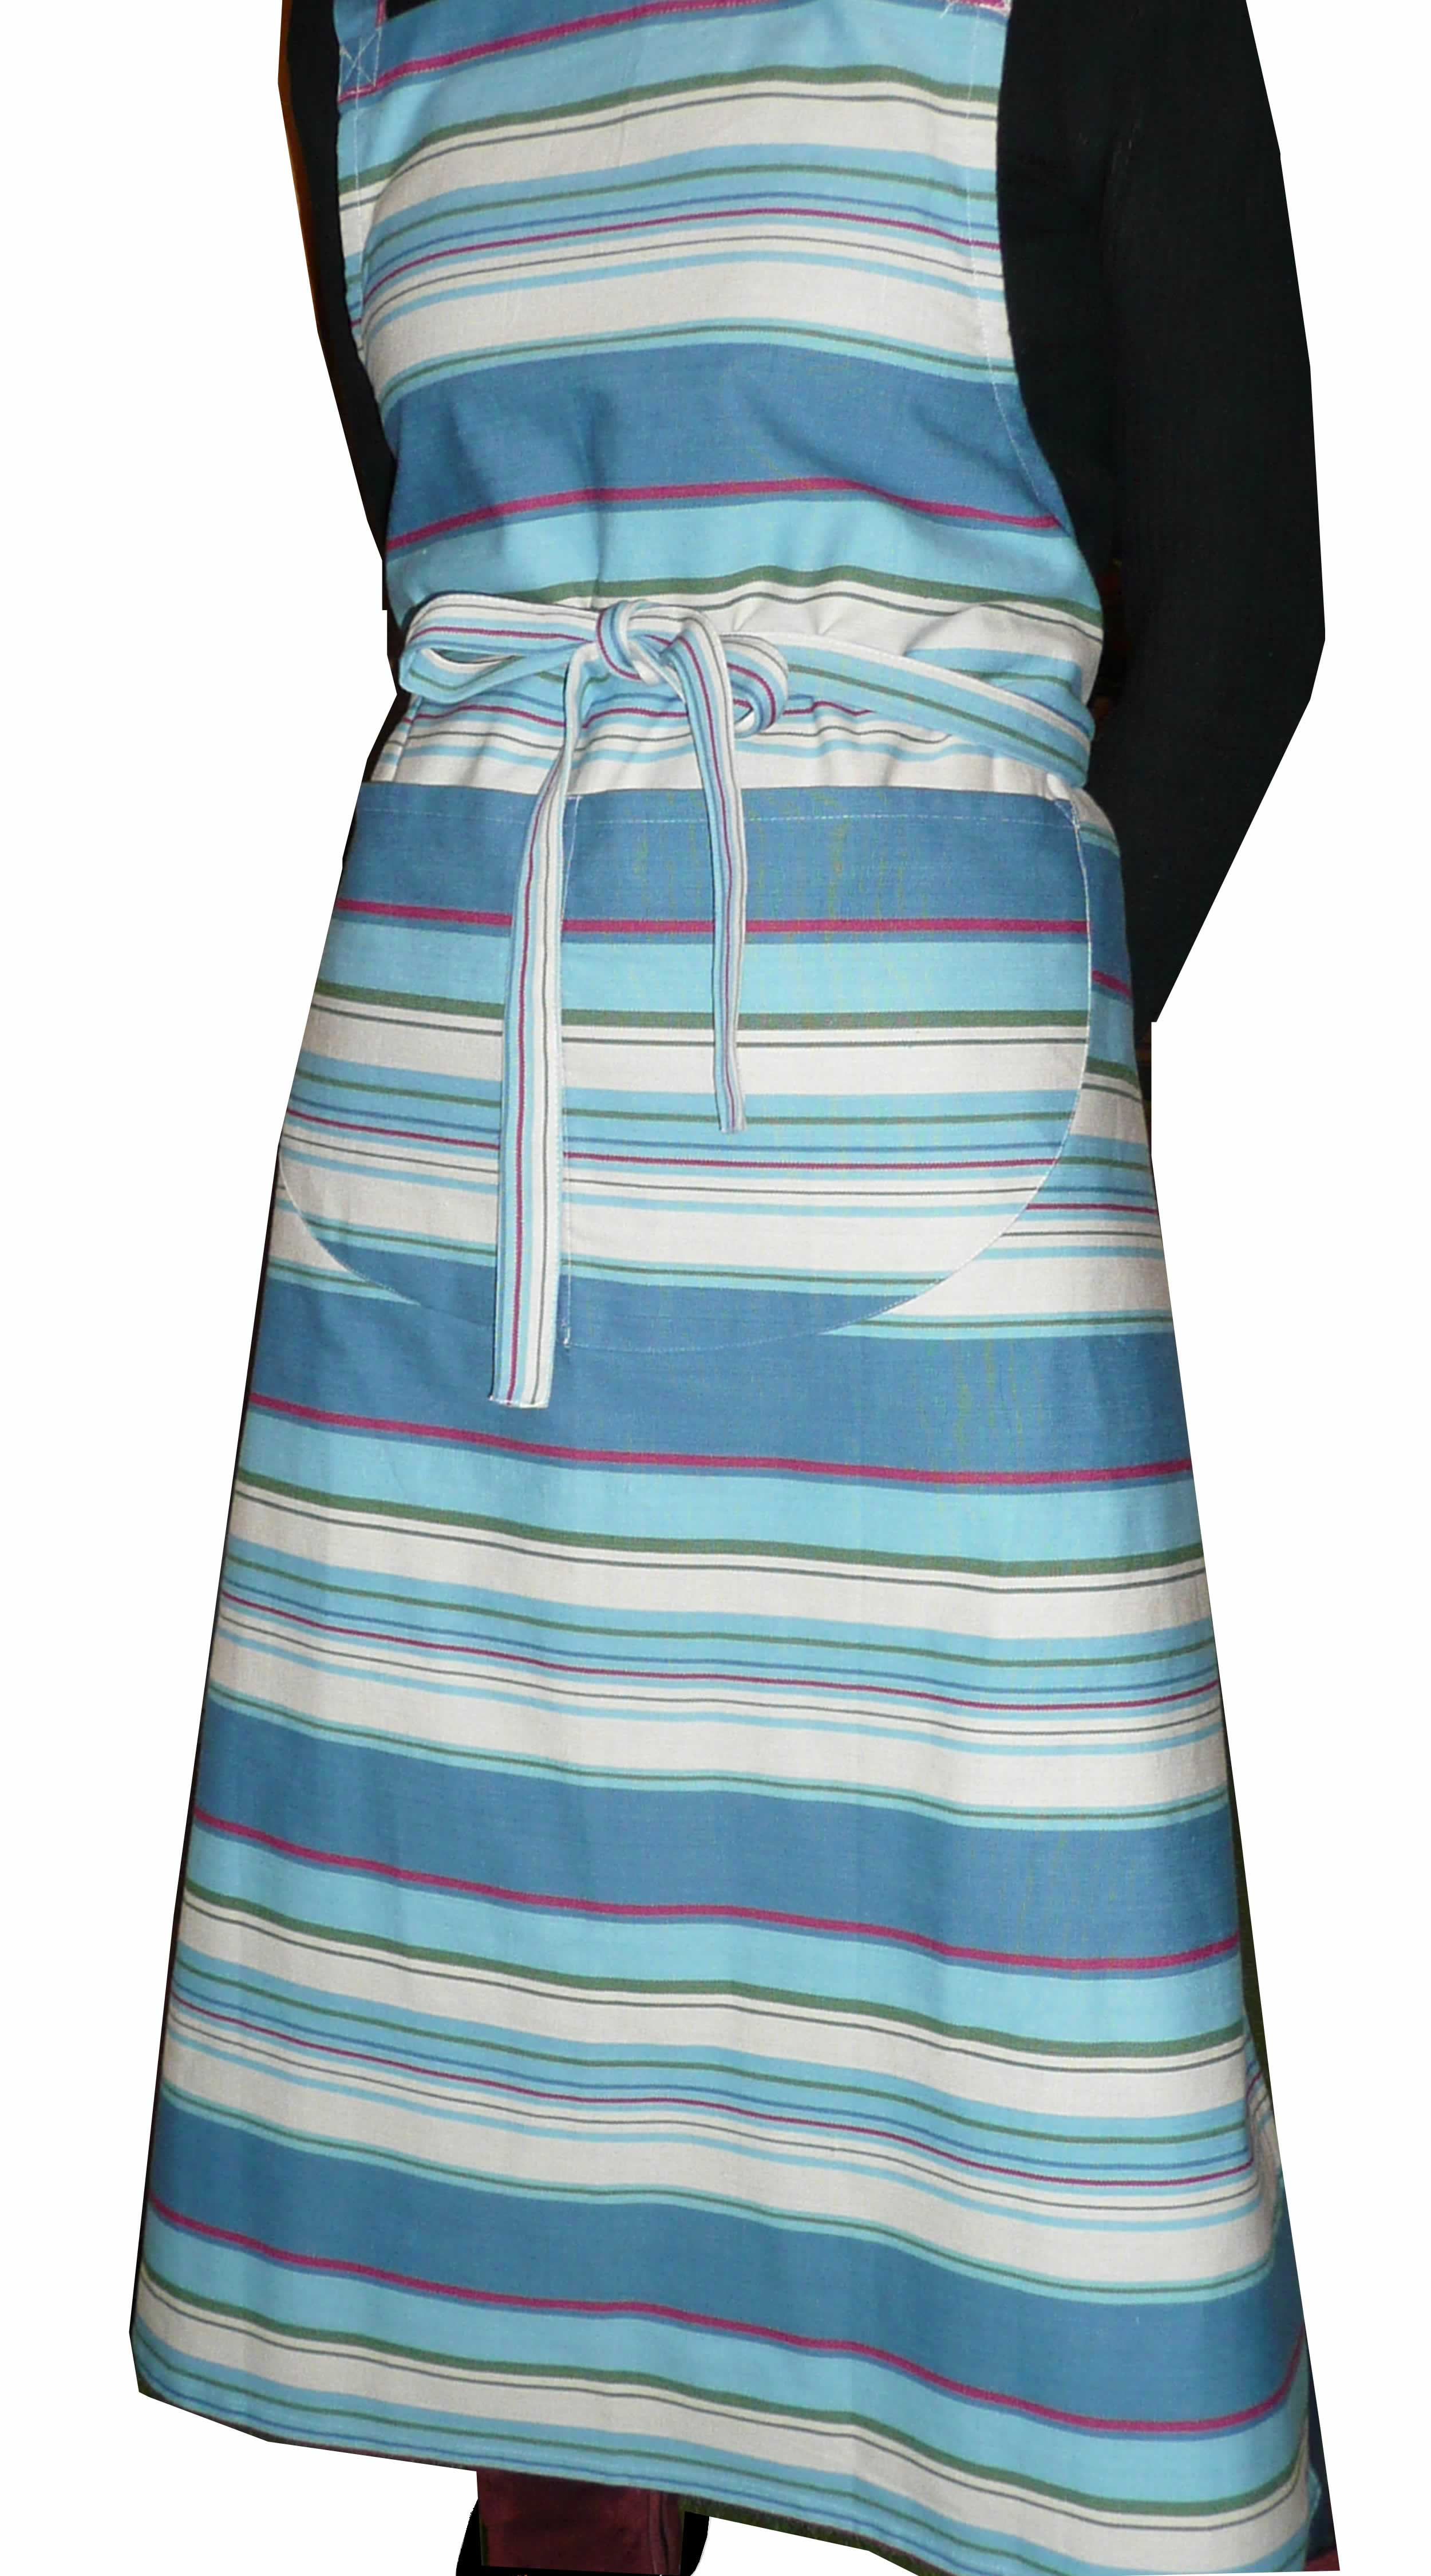 Striped Cotton Apron petrol blue, pale blue, cream stripes